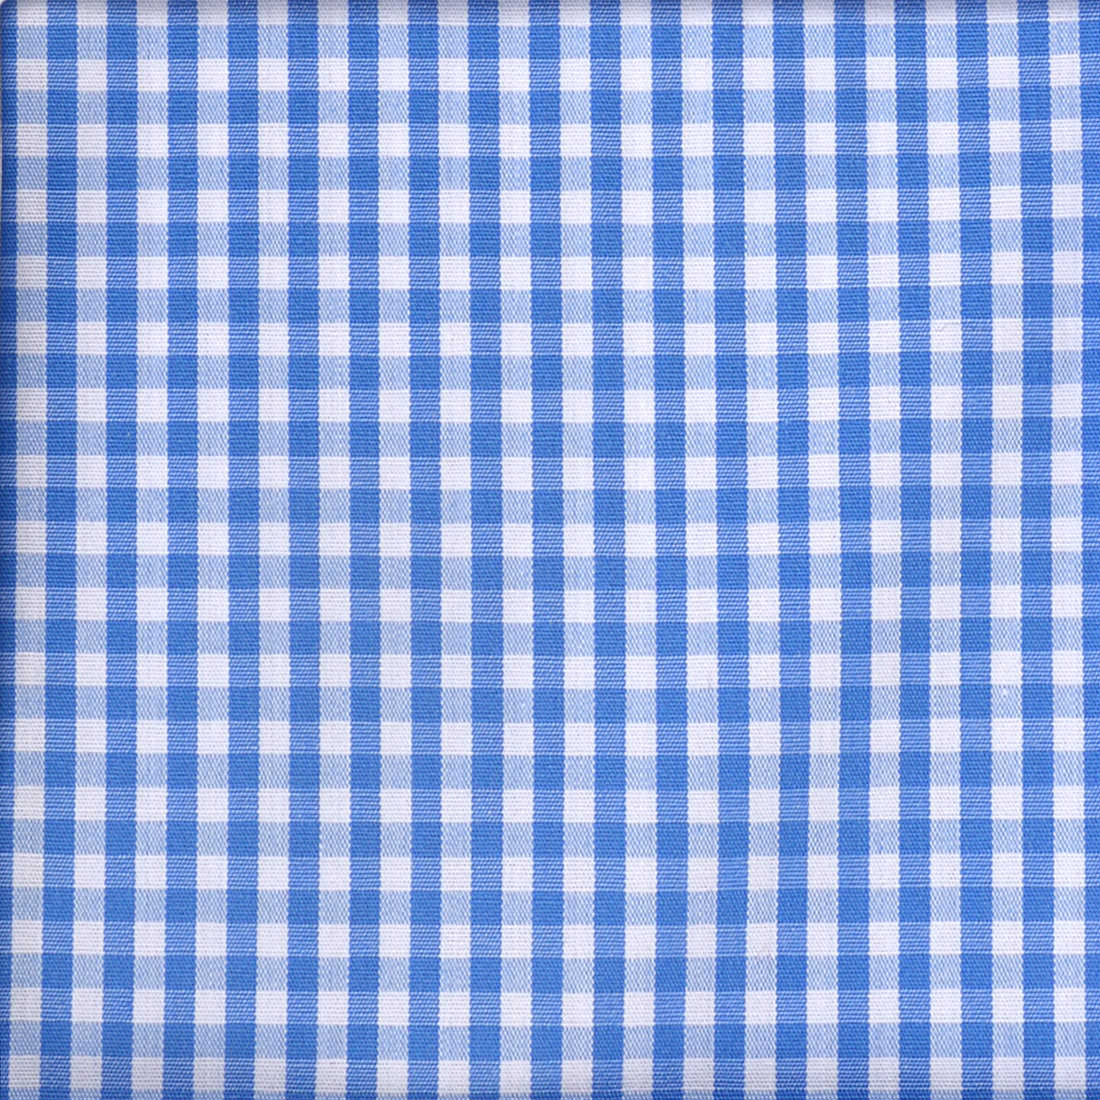 ... broadcloth pattern small gingham material broadcloth weight light